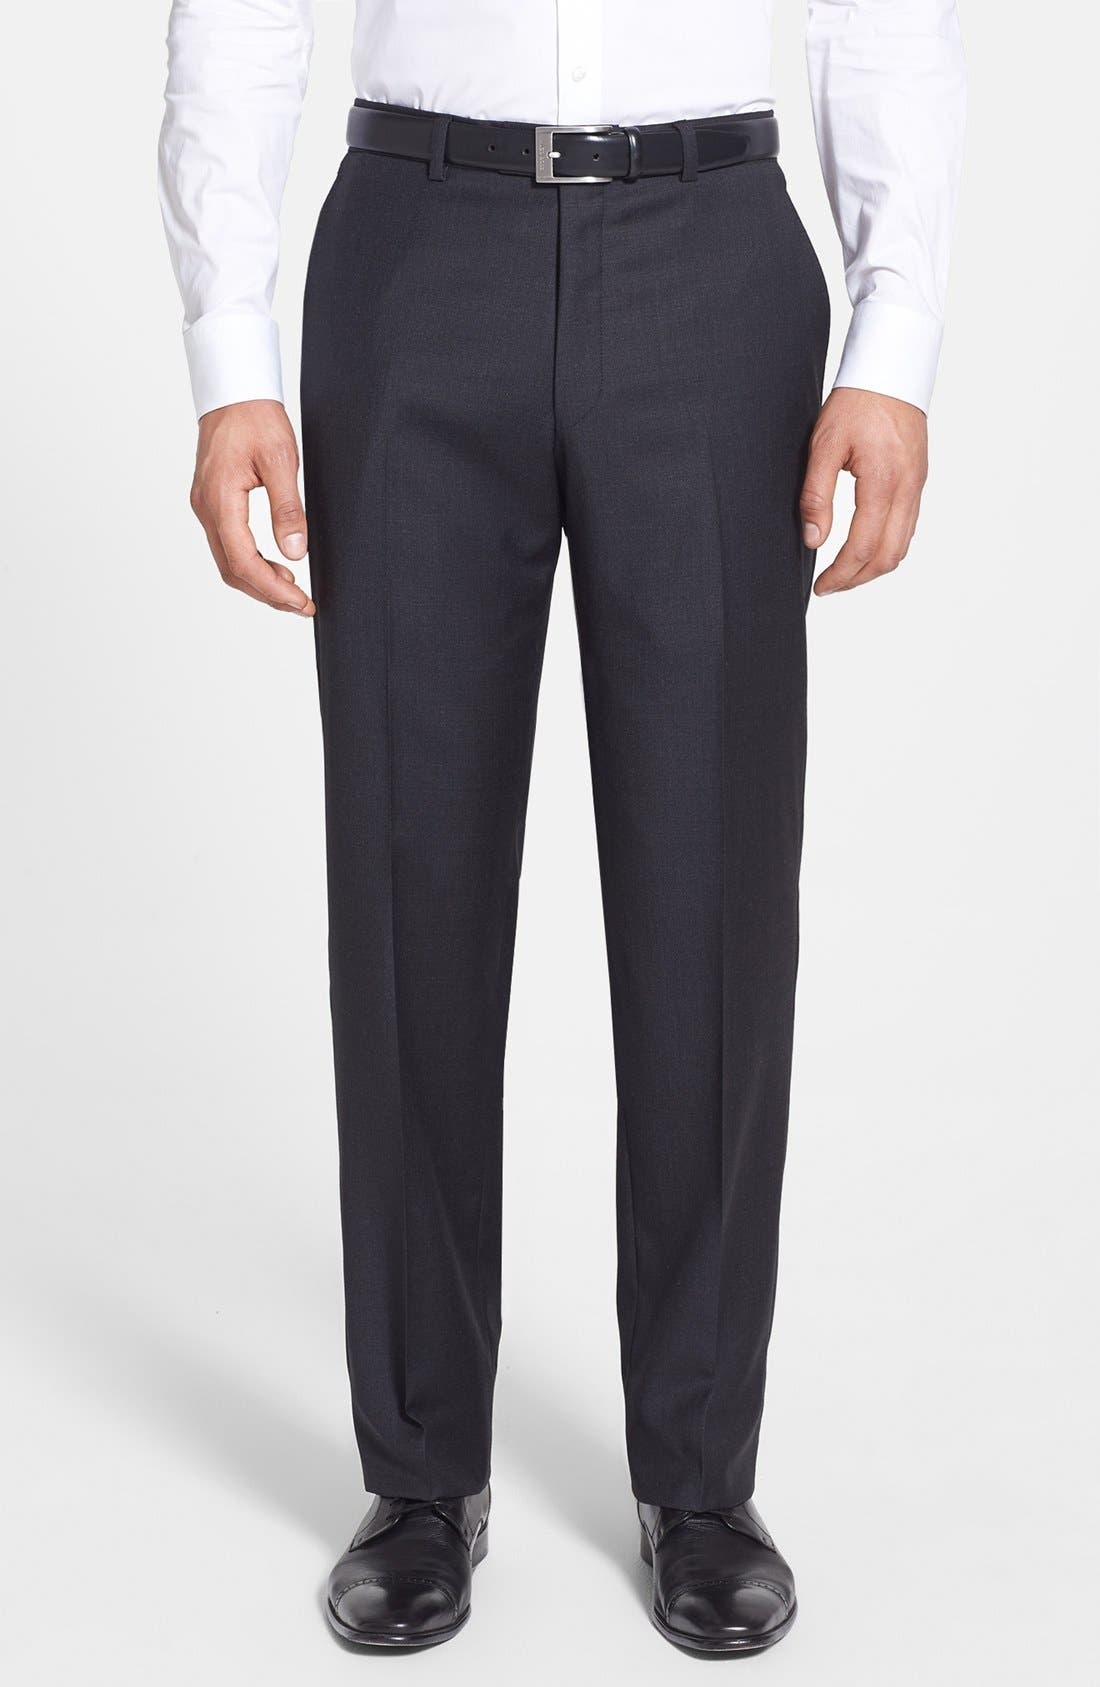 HART SCHAFFNER MARX, New York Classic Fit Solid Stretch Wool Suit, Alternate thumbnail 5, color, GREY